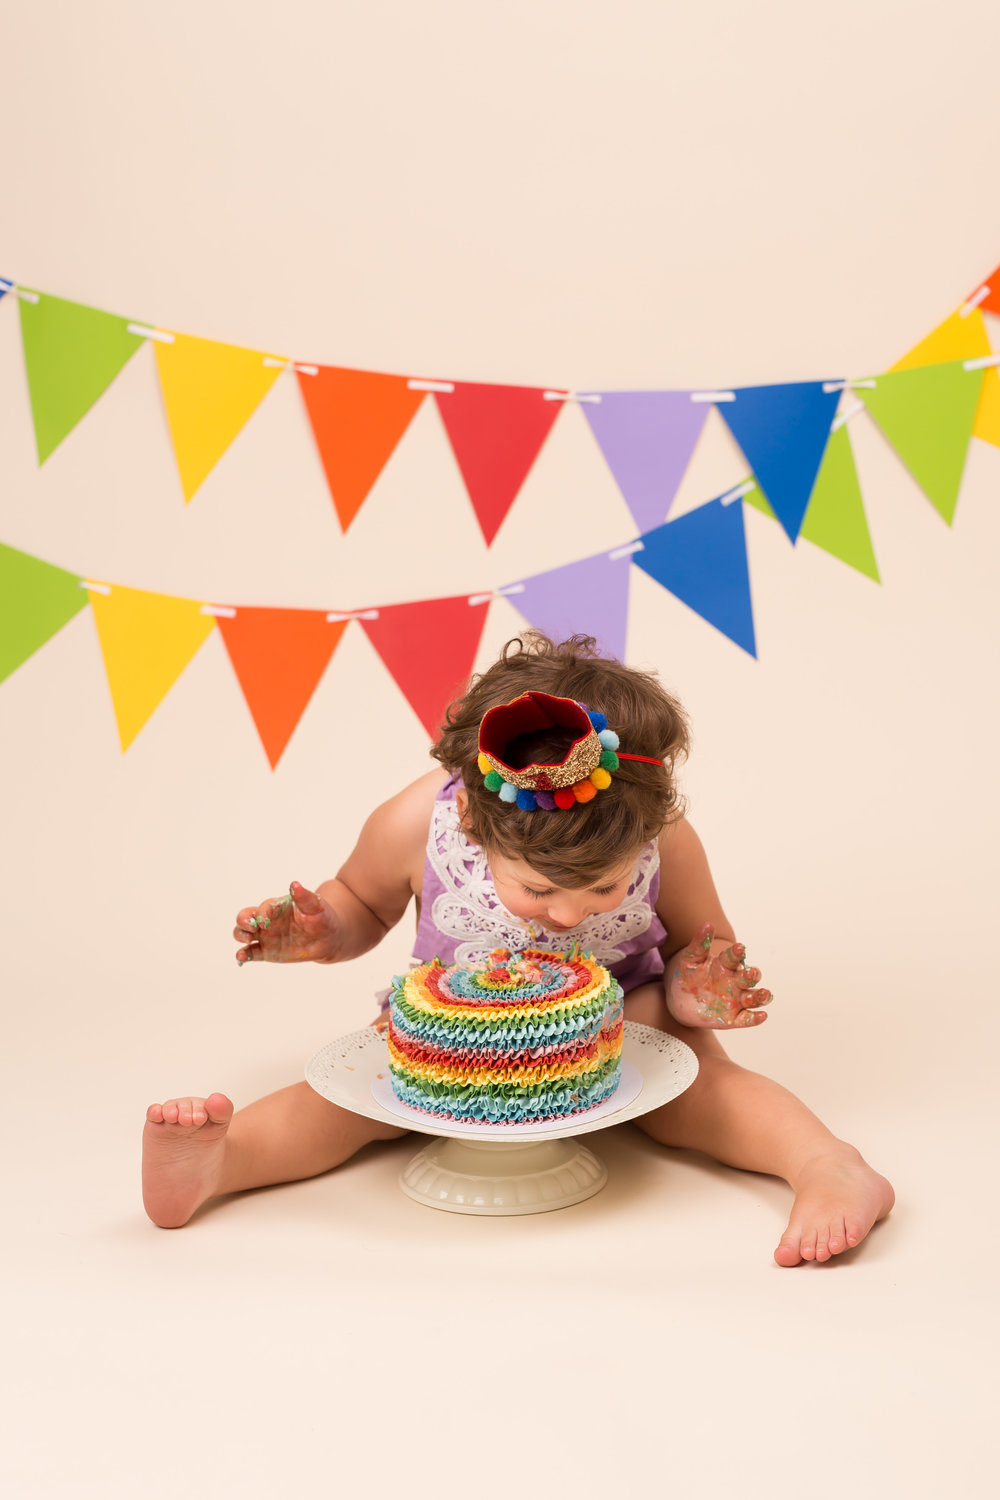 Cake smash photography - Wellington, Taunton, Somerset.jpg